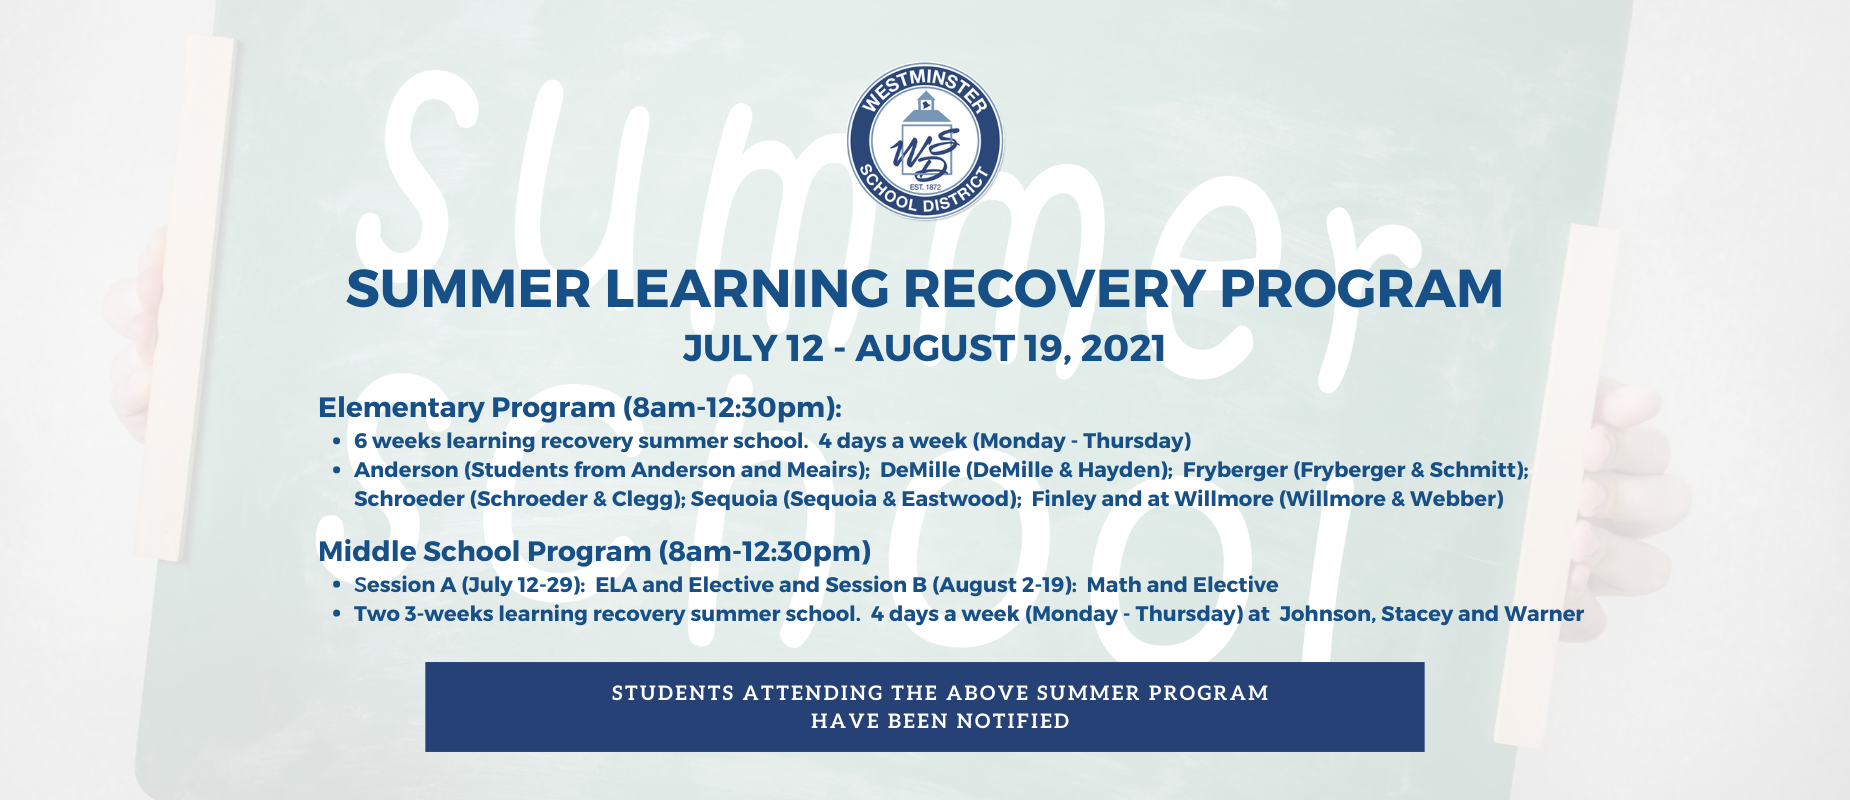 Summer Learning Recovery Program 2021